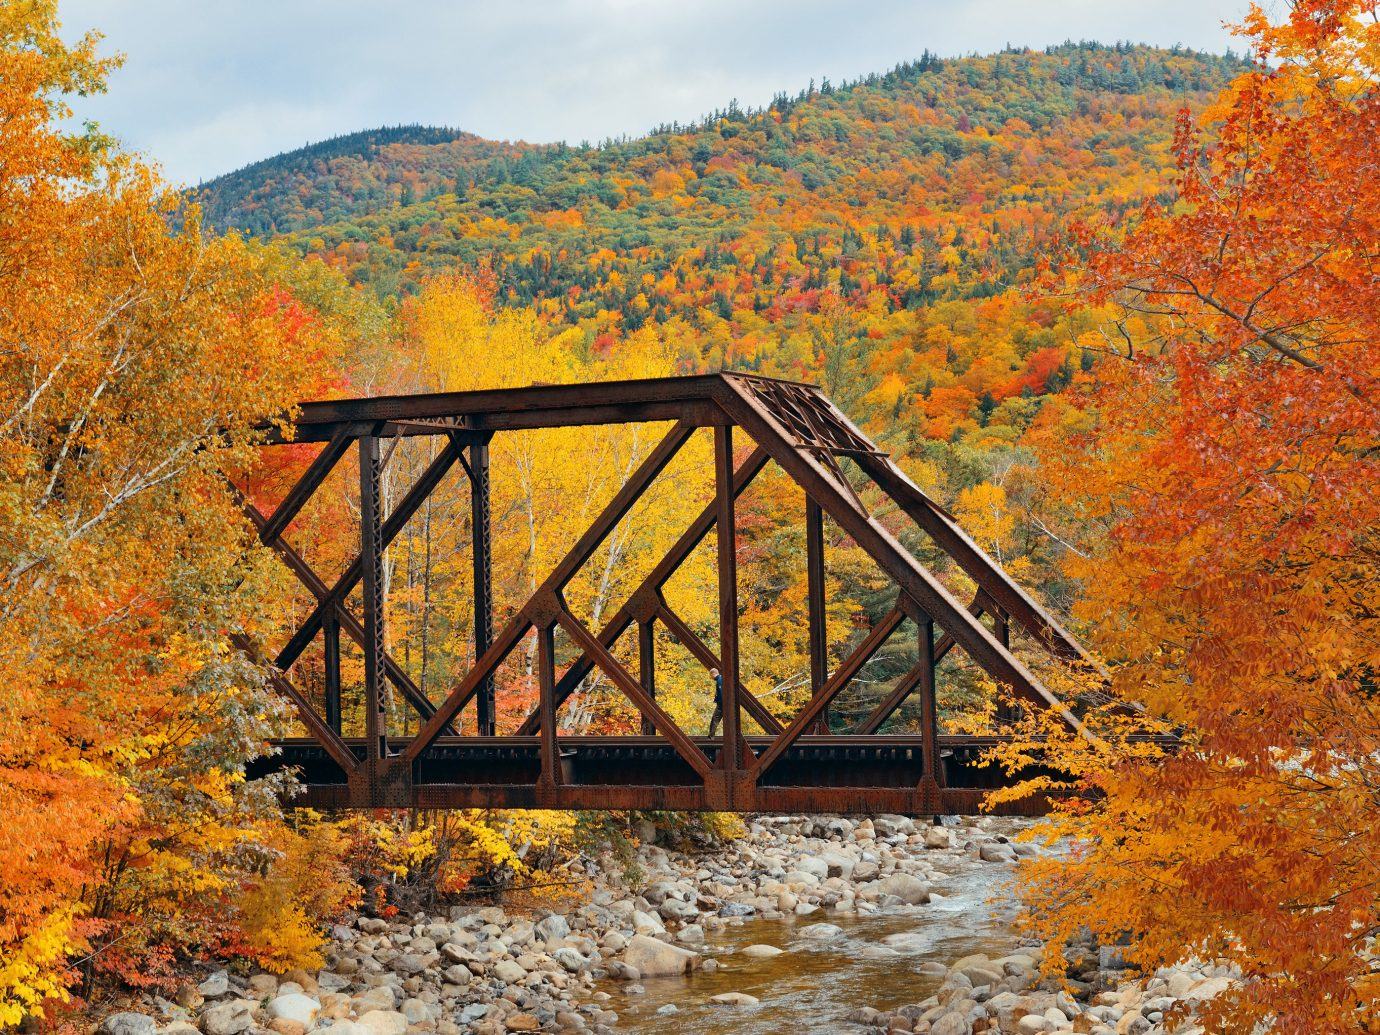 Trip Ideas tree outdoor building River bridge water habitat Nature autumn wilderness season Lake natural environment leaf Forest morning woodland landscape wooded rural area mountain nonbuilding structure wood traveling hillside surrounded